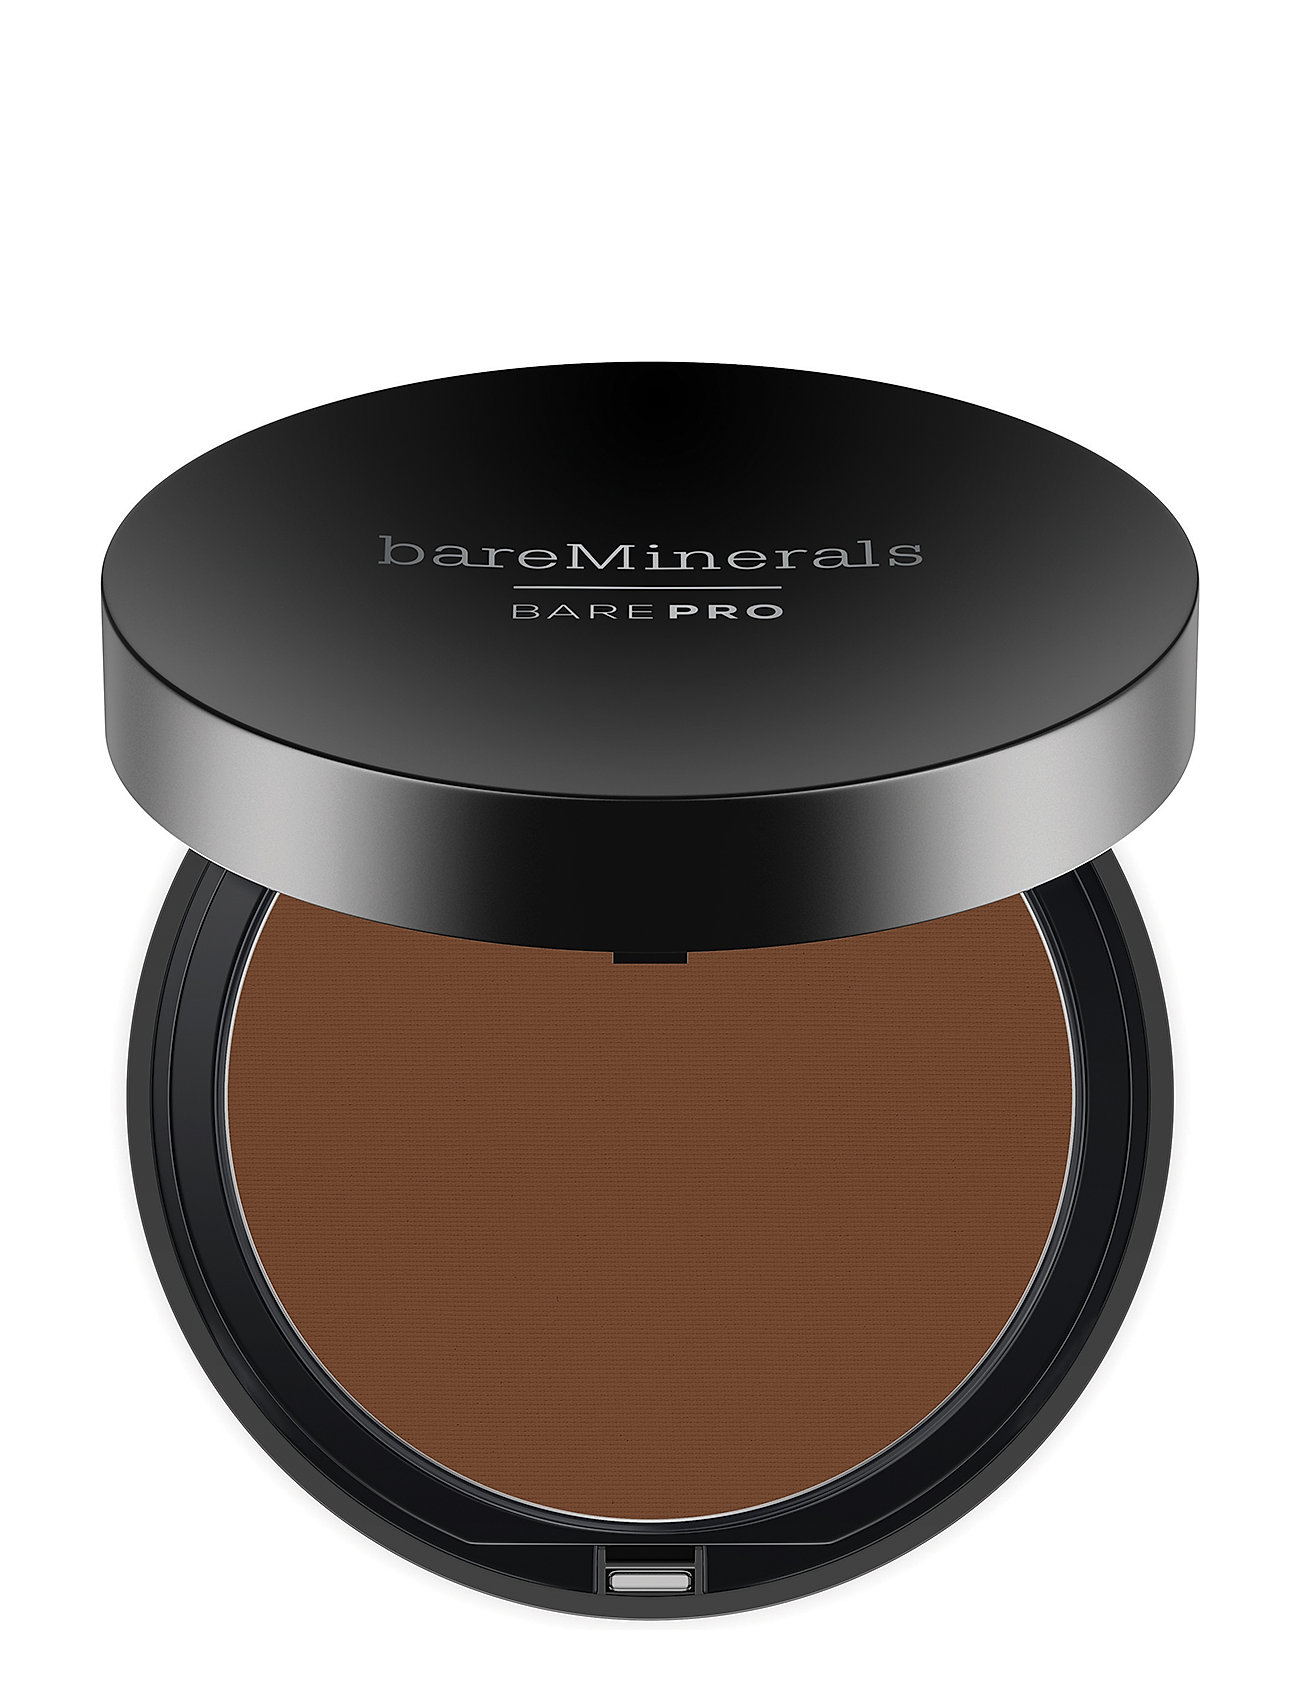 Image of Barepro Performance Wear Powder Foundation Foundation Makeup BareMinerals (3251433737)